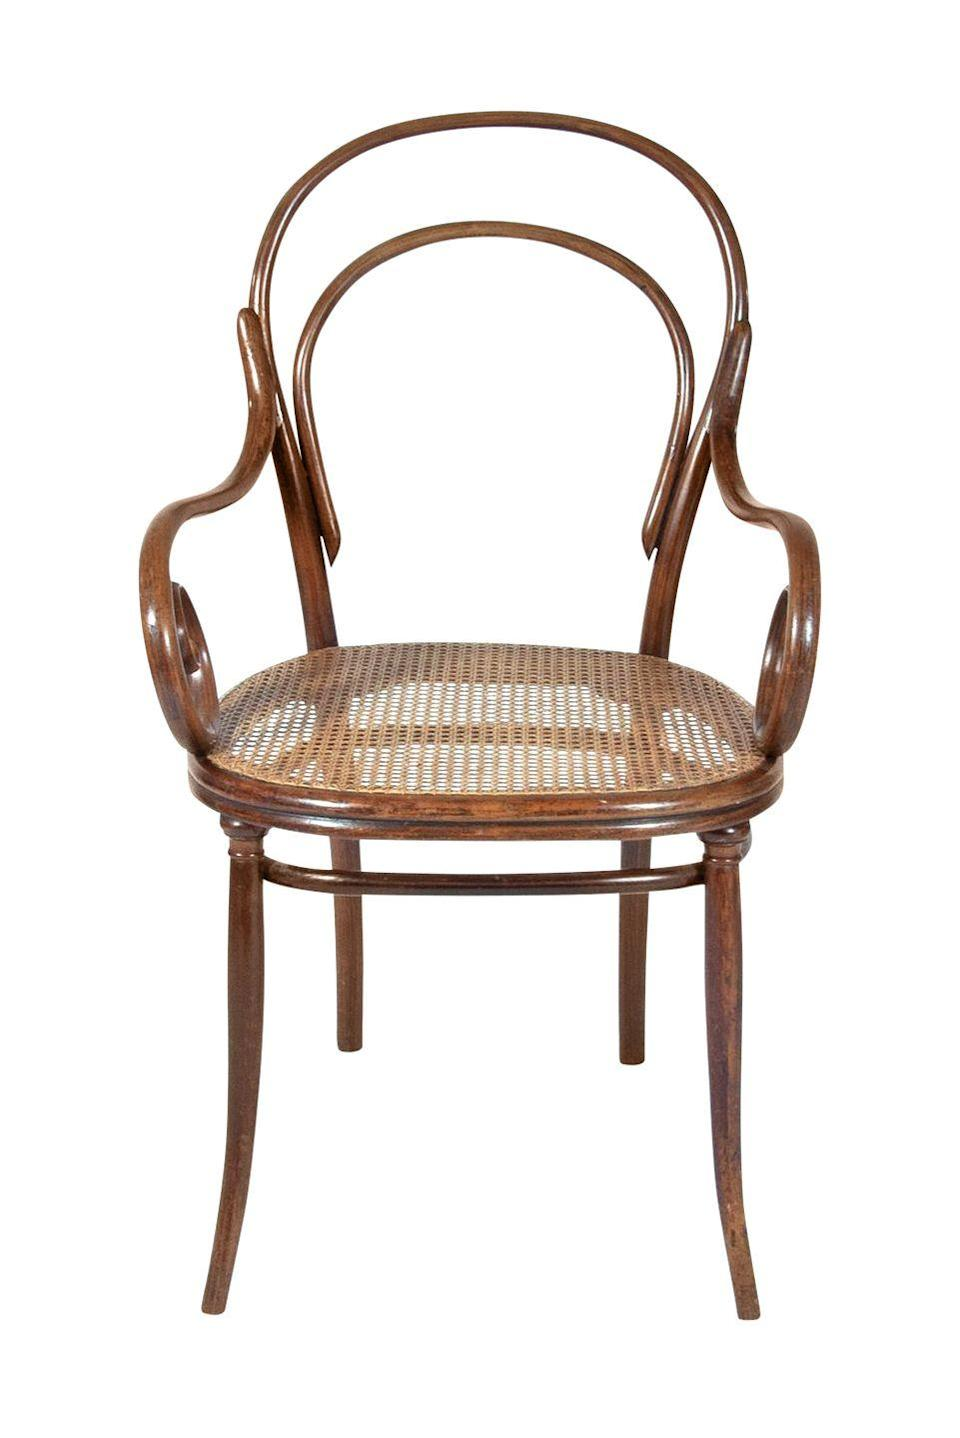 "<p><strong>What it was worth (1985): </strong>$350</p><p><strong>What it's worth now:</strong> $500</p><p><a href=""https://www.ebay.com/itm/Early-Original-Thonet-Austria-Bentwood-Wood-Ice-Cream-Parlor-Chair-Vintage/302843409969"" rel=""nofollow noopener"" target=""_blank"" data-ylk=""slk:This style of furniture"" class=""link rapid-noclick-resp"">This style of furniture</a> was invented by Michael Thonet, a furniture maker born way back in 1796.</p>"